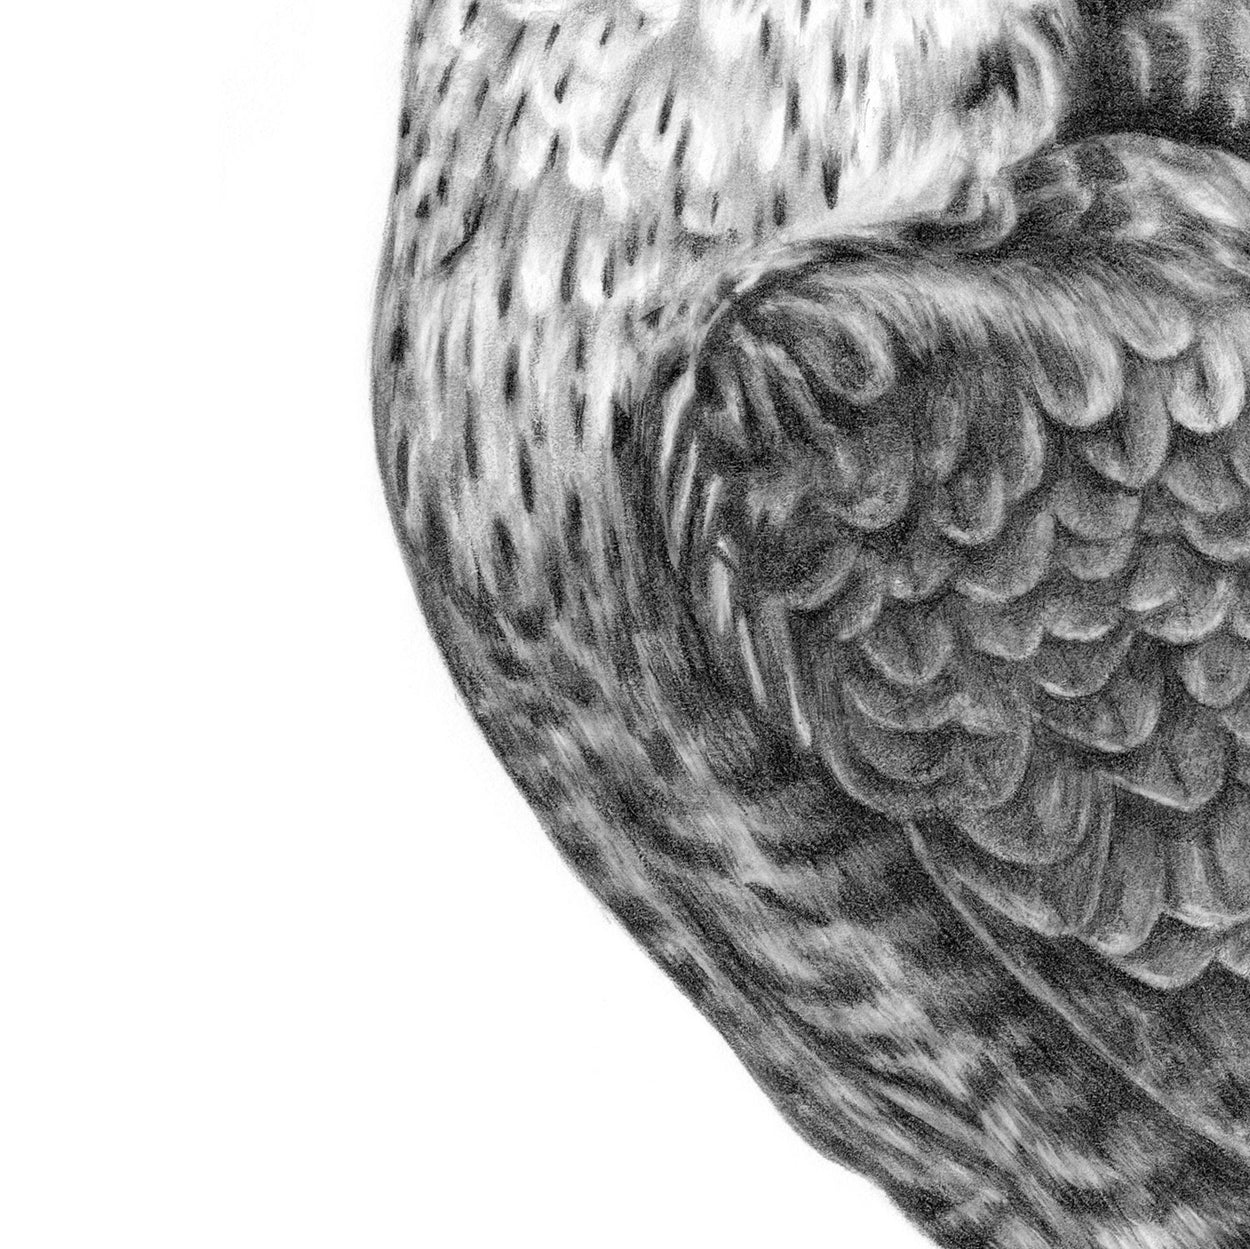 Peregrine Pencil Drawing Close-up 2 - The Thriving Wild - Jill Dimond